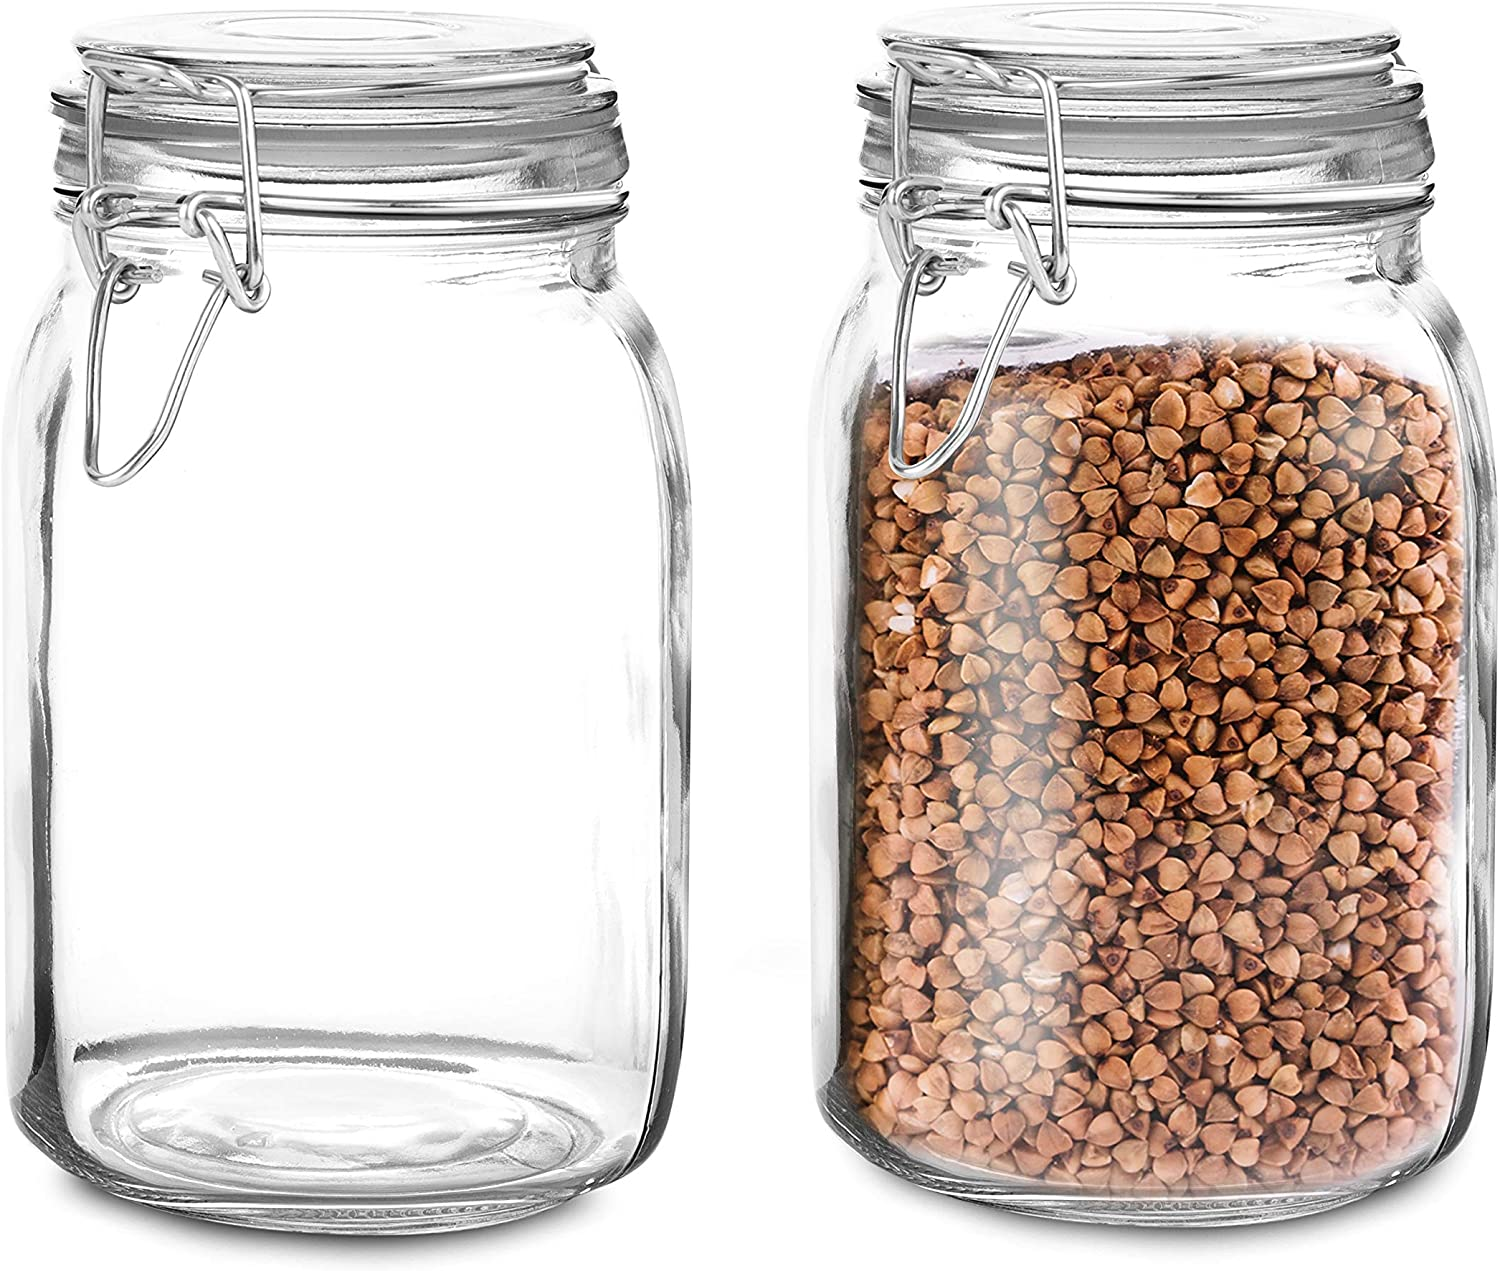 Set of 2 Large Glass Mason Jar with Lid (3 Liter) | Airtight Glass Storage Container for Food, Flour, Pasta, Coffee, Candy, Dog Treats, Snacks & More | Glass Organization Canisters 100 Ounces